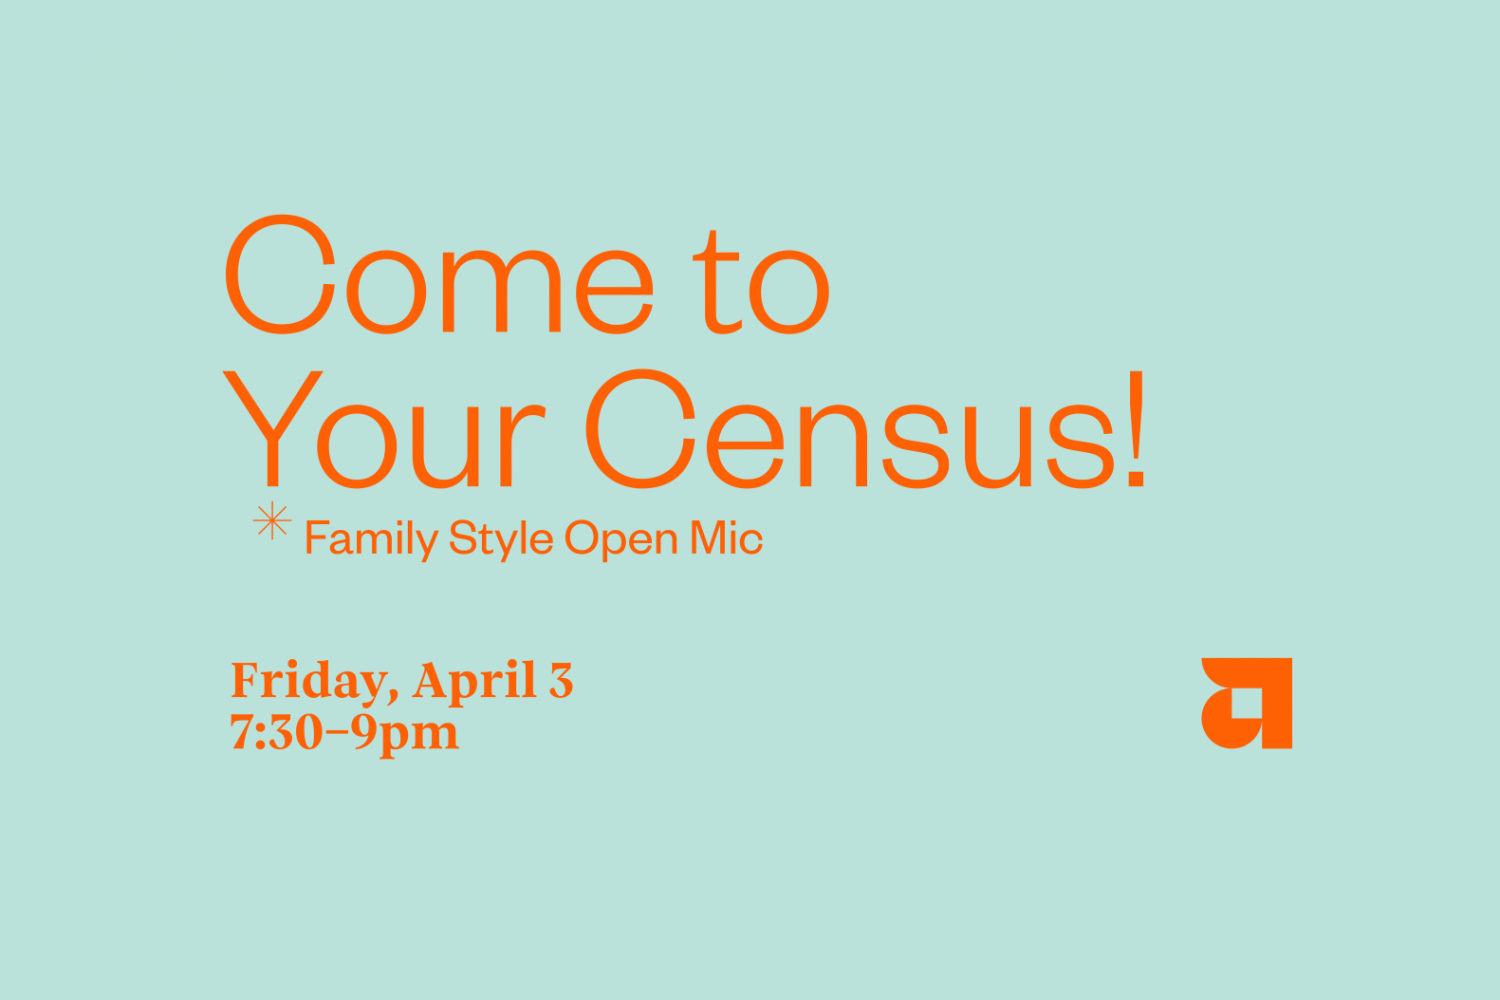 Come to Your Census event flyer